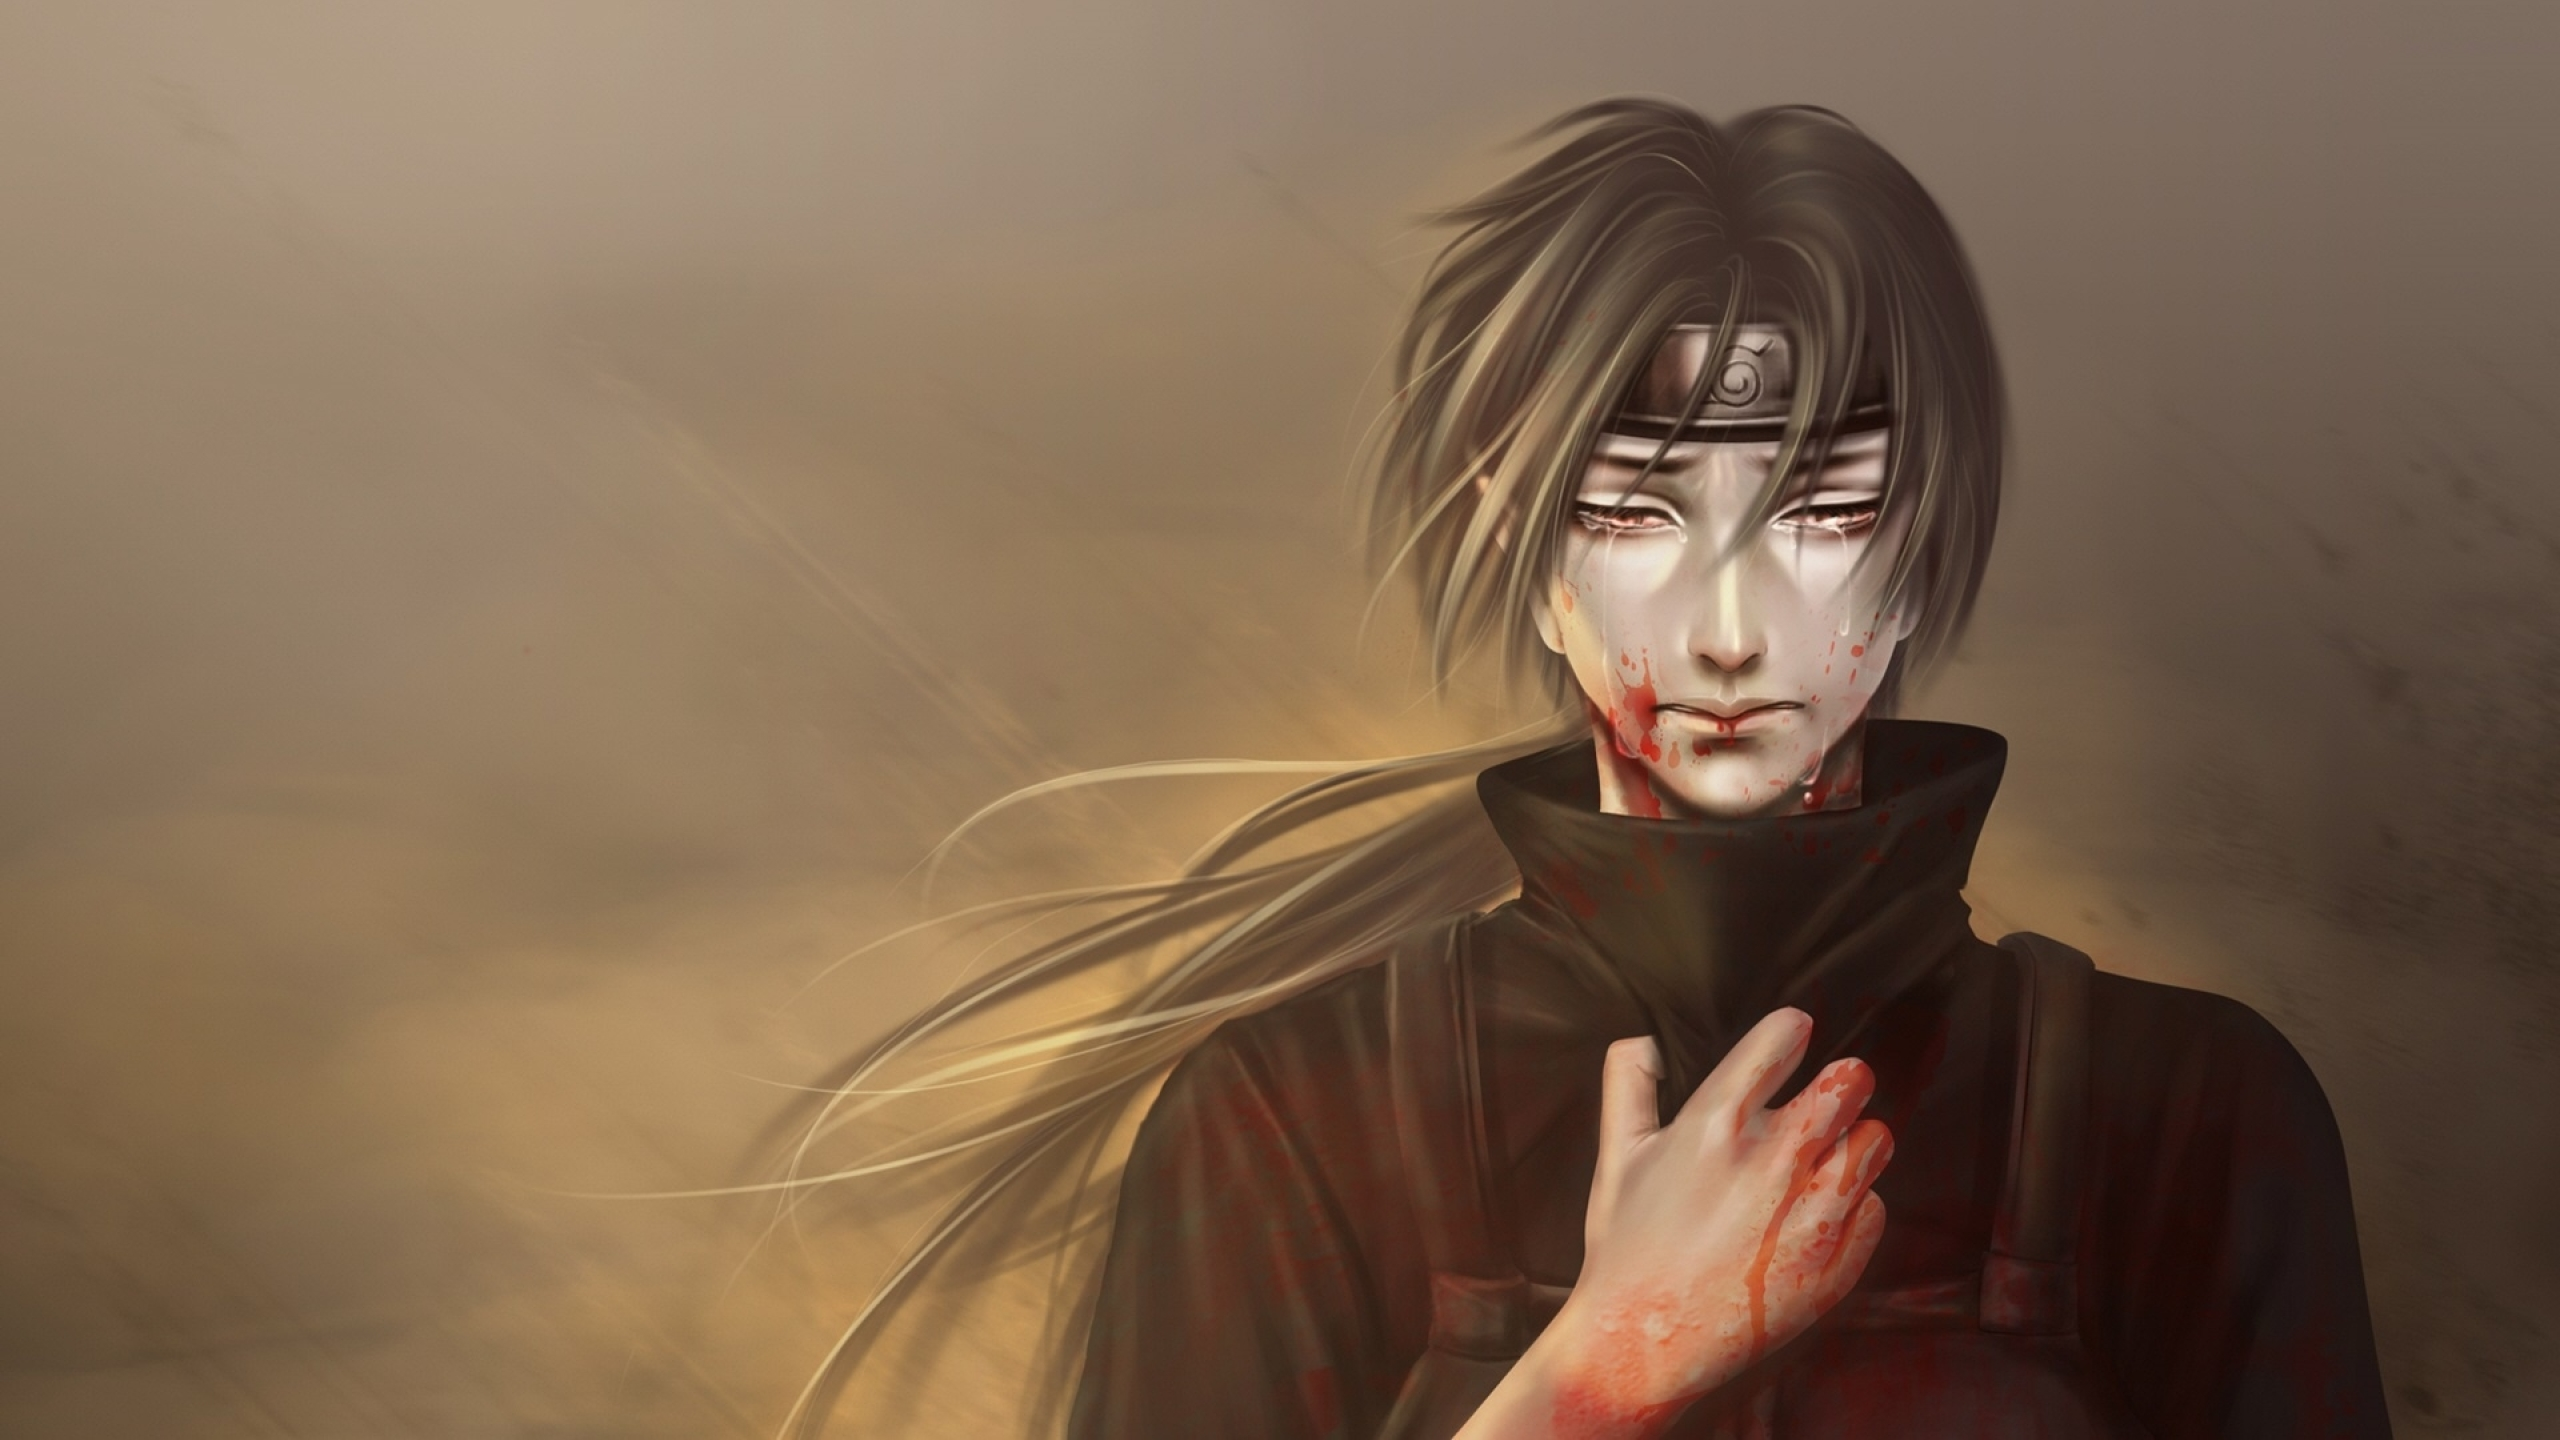 2560x1440 Itachi Uchiha 2019 Art 1440p Resolution Wallpaper Hd Anime 4k Wallpapers Images Photos And Background